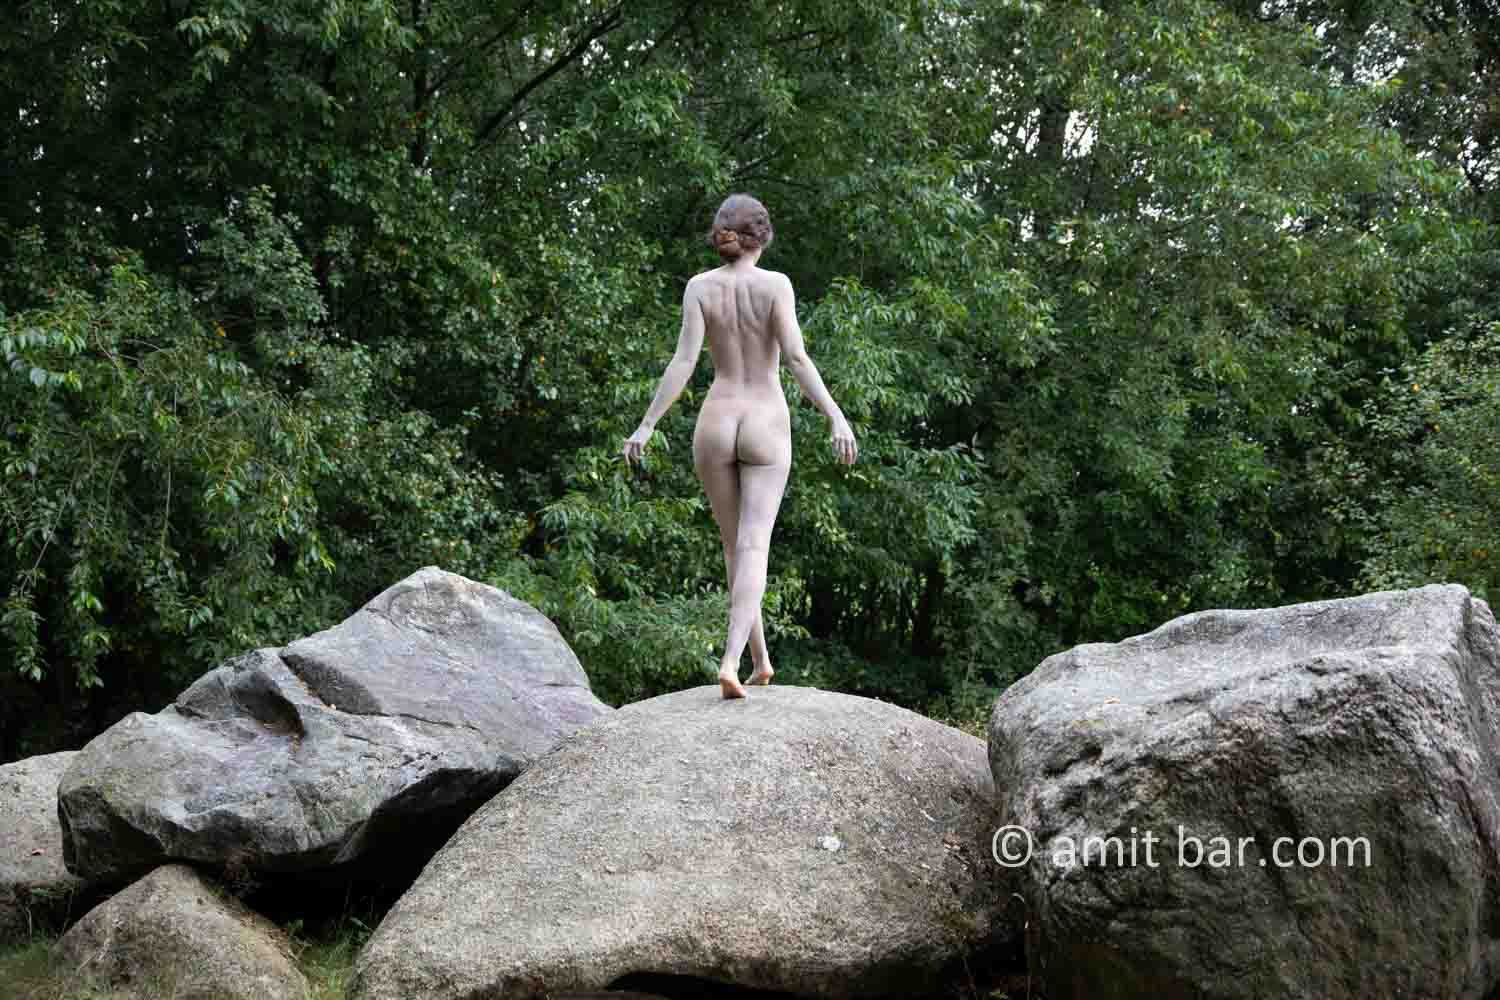 Dolmen woman body-painting VI: body painted Elle is walking and laying around and on the huge stones of the dolmen at Drenthe, The Netherlands